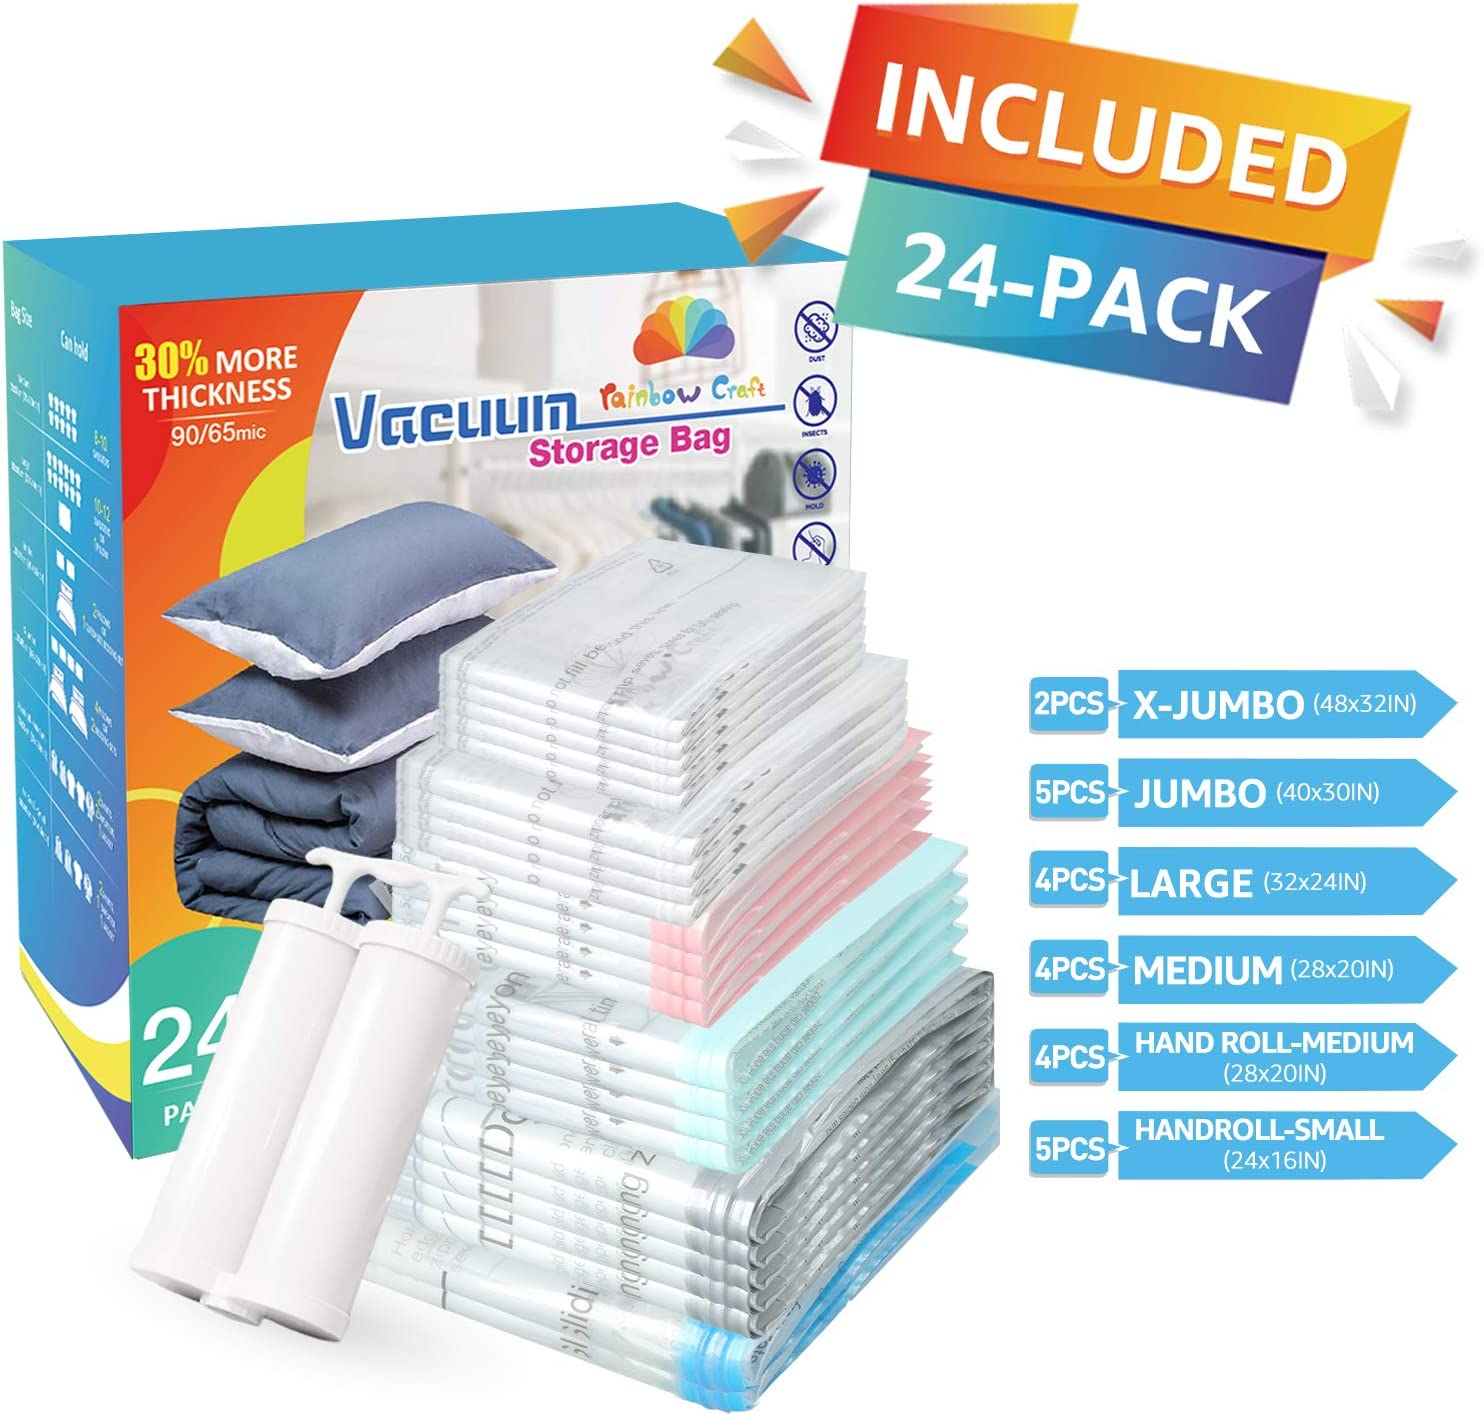 rainbow craft 24-Pack Combo Vacuum Storage Bags for Cloths&Home Textiles - 24 Packs Space Saver Bags Including 2pc X-Jumbo, 5pc Jumbo, 4pc Large, 4pc Medium & 9pc Hand Roll Bags - Free Dual Pump